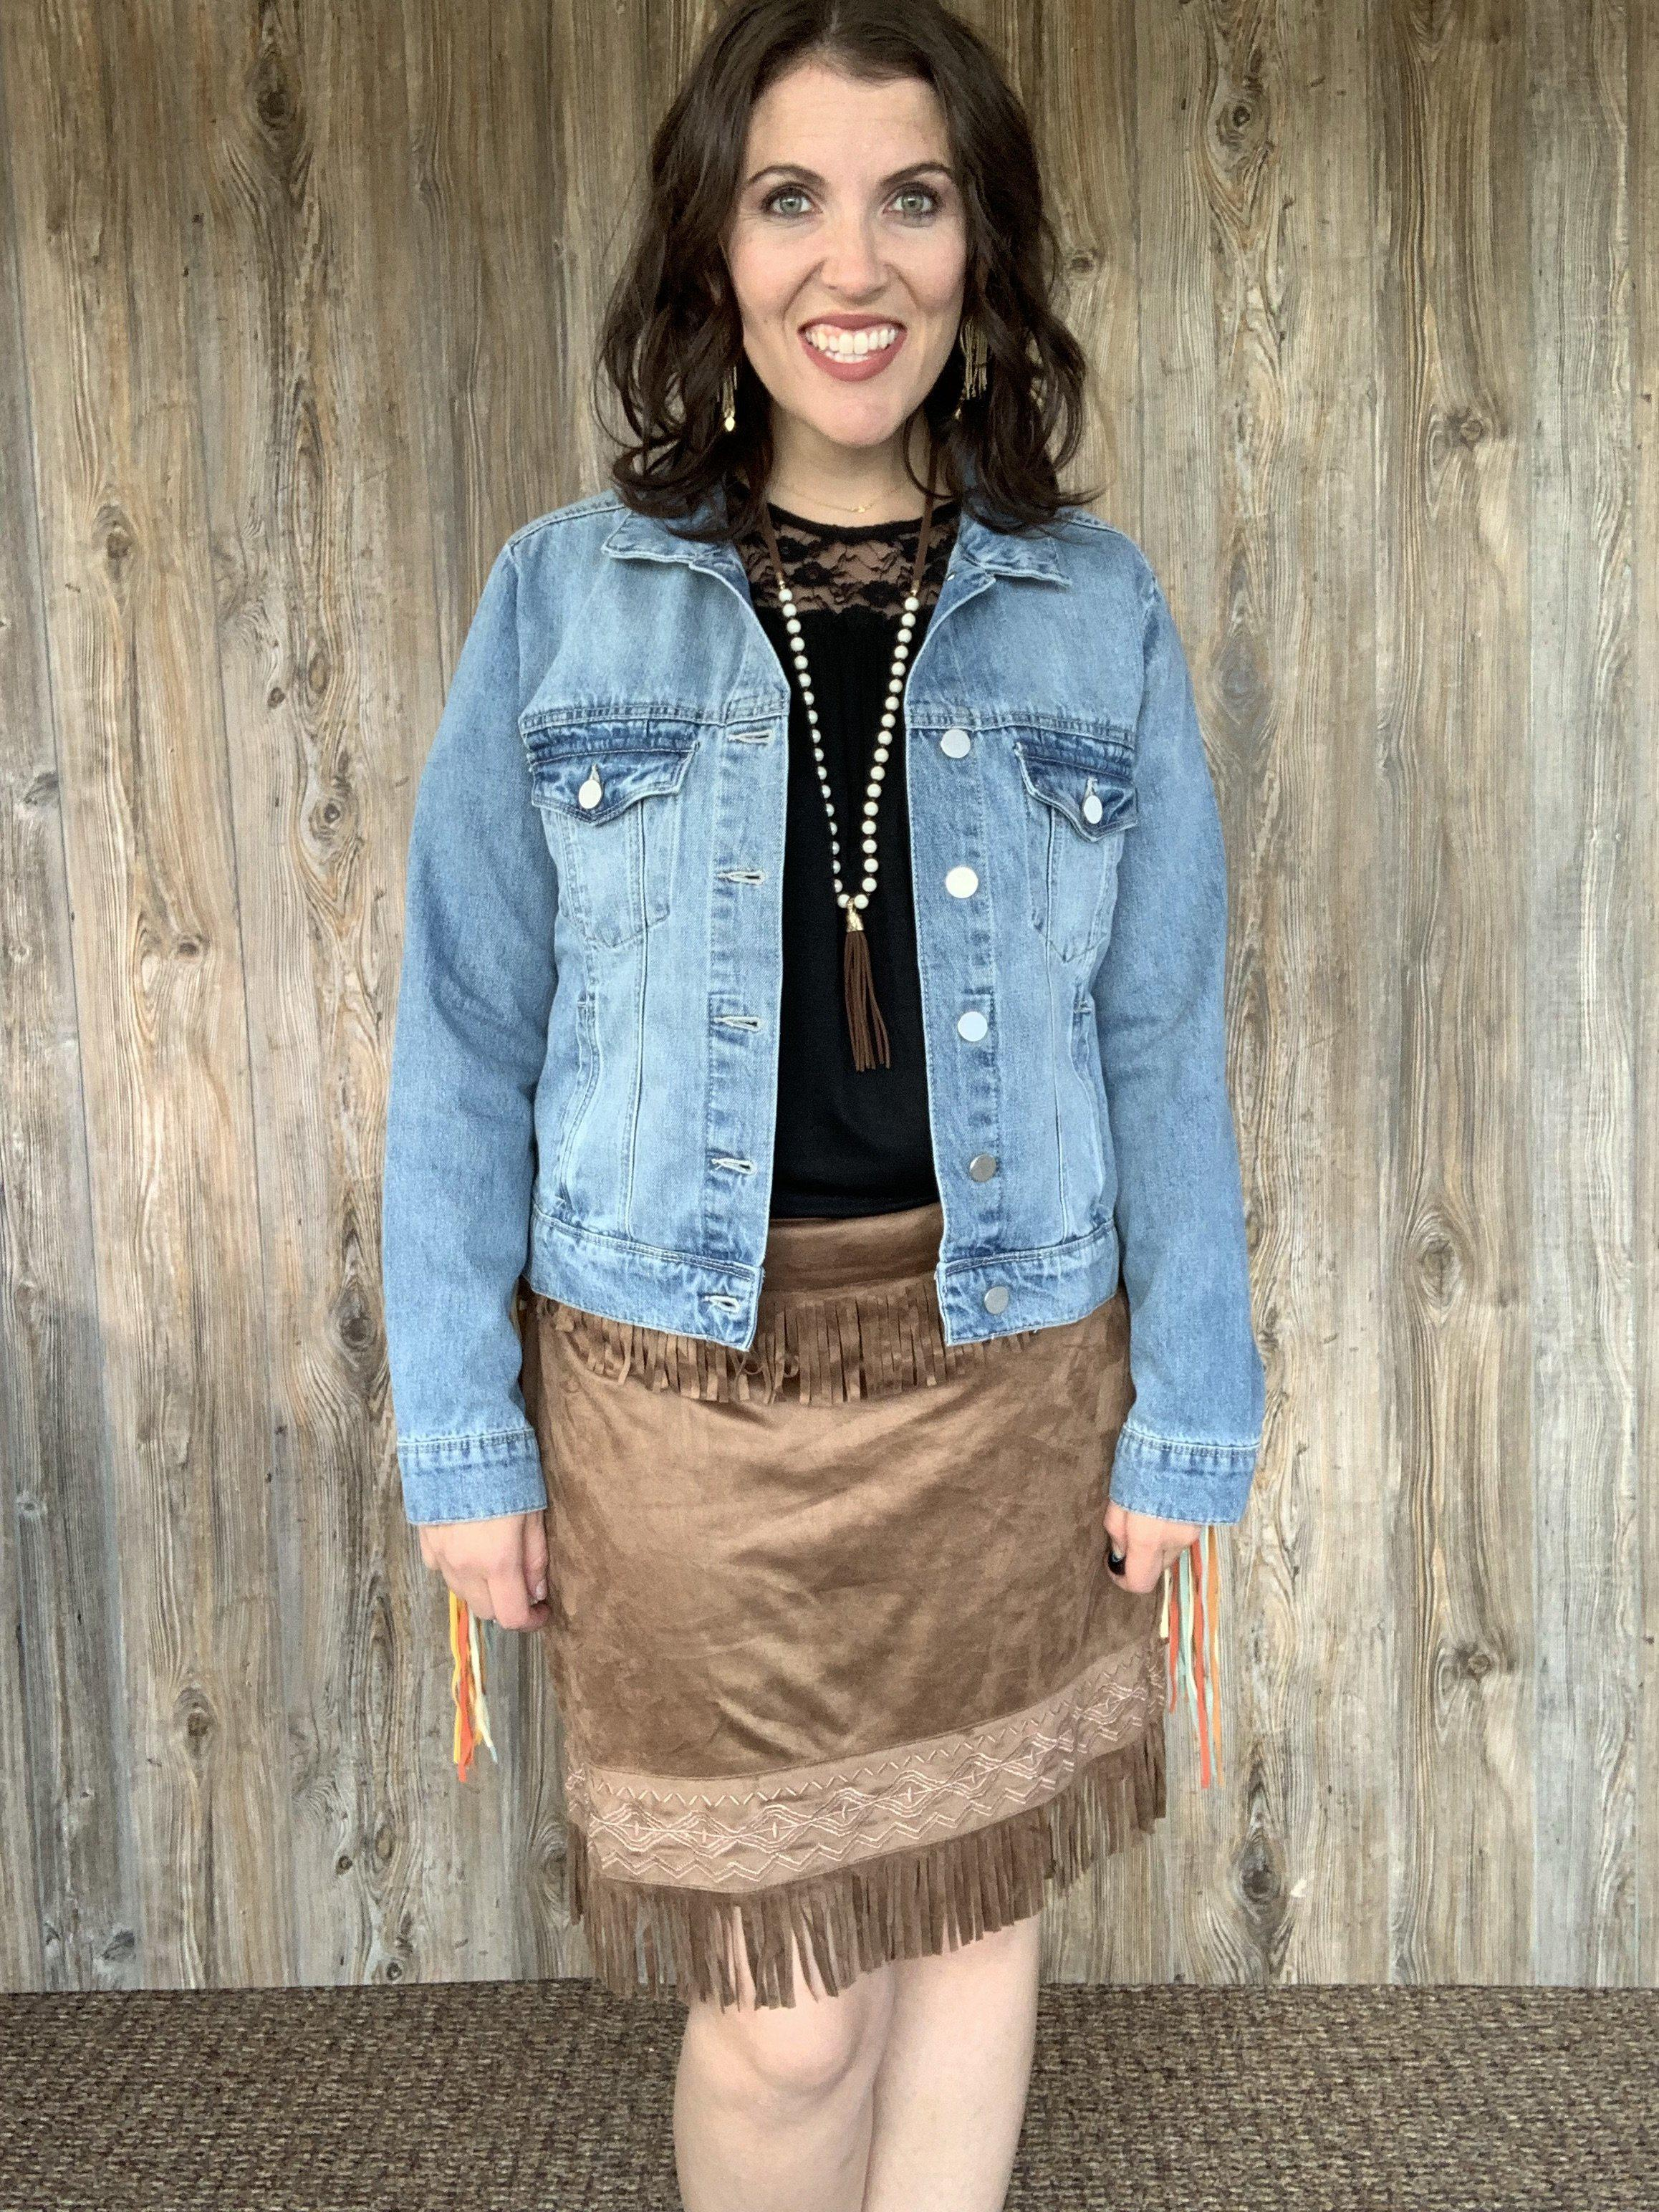 The Cheyenne Skirt